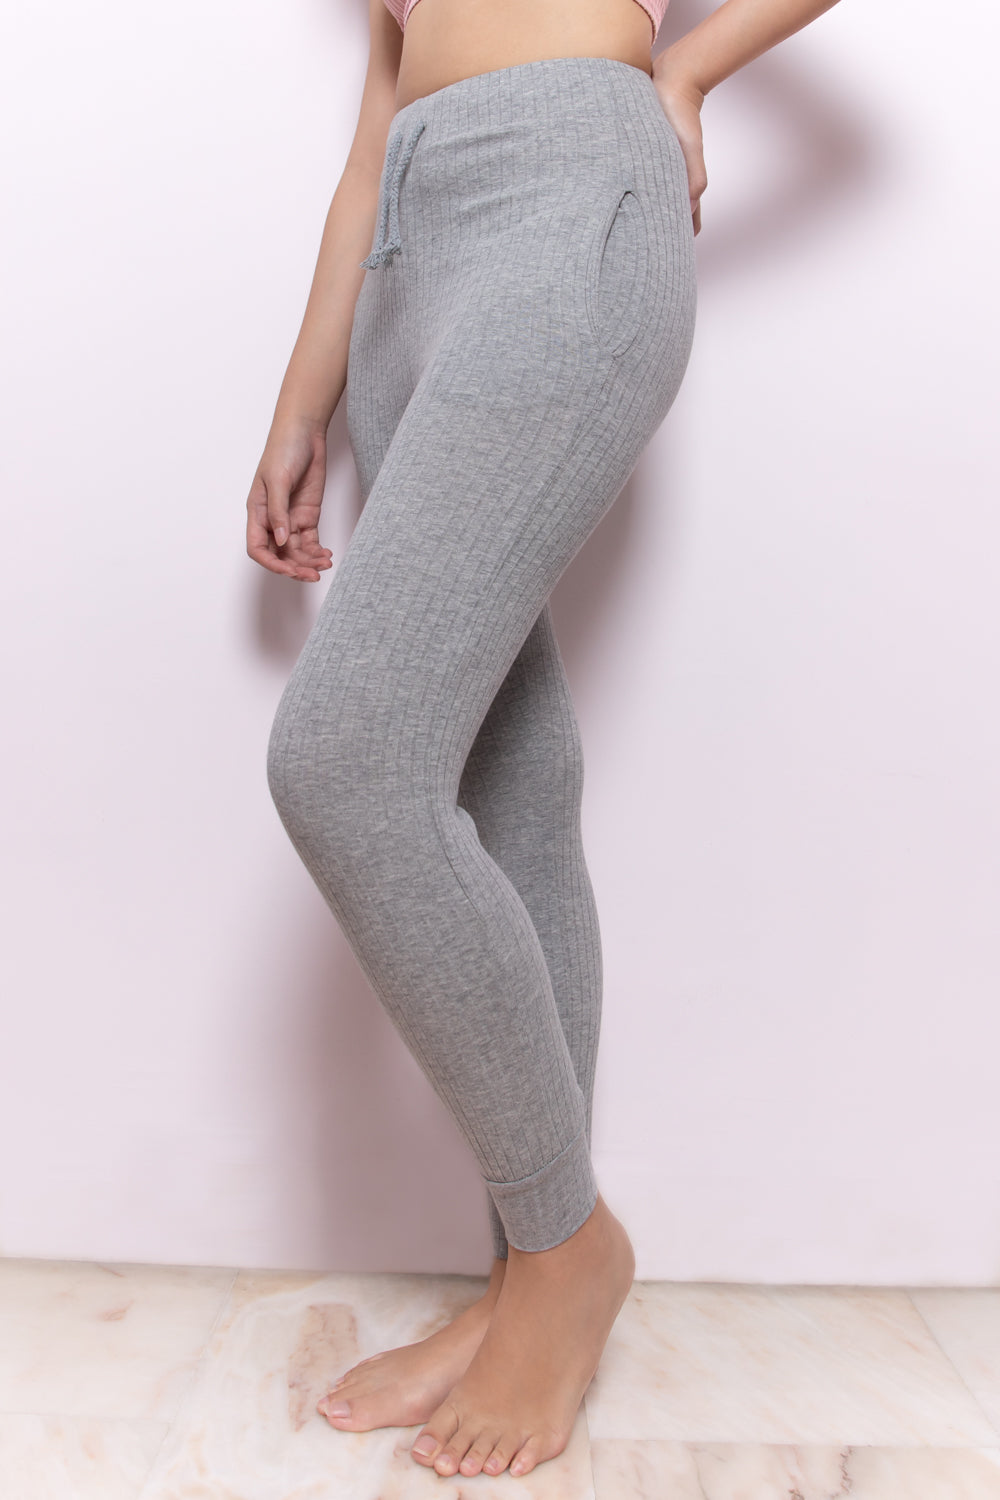 Claire Essential Ribbed Cuffed Hem Joggers in Grey - Three One Duo